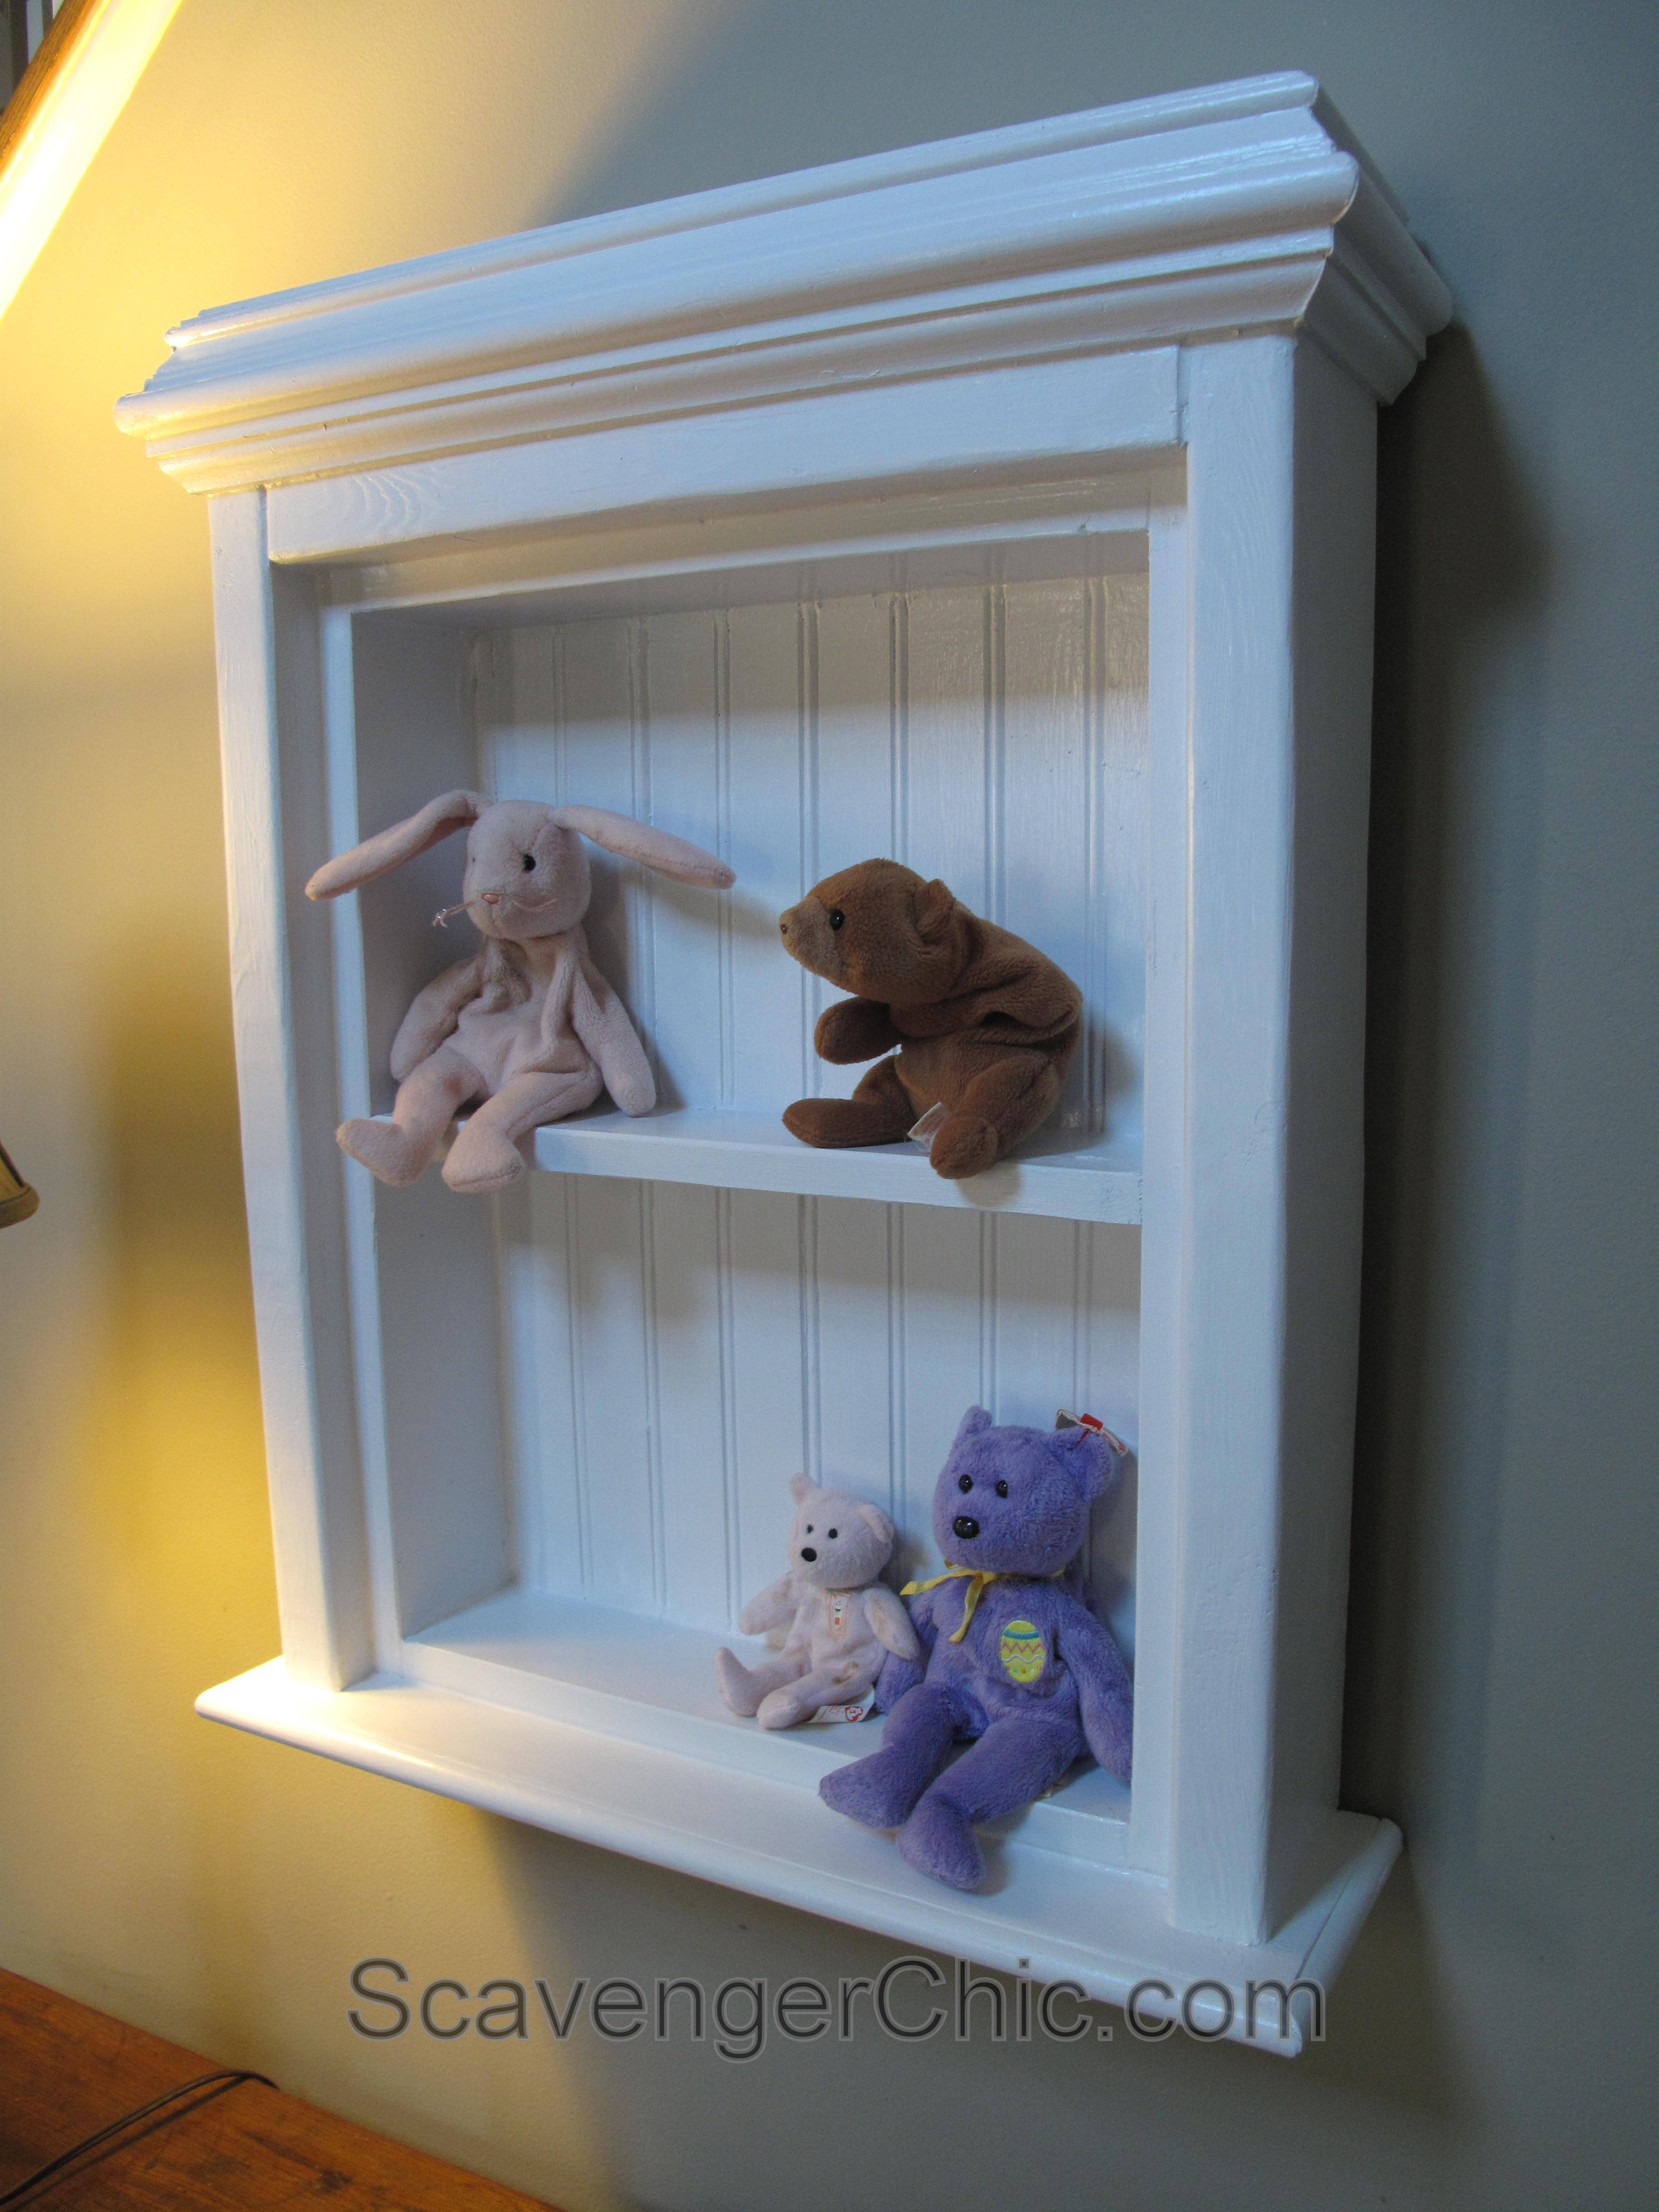 Create a Medicine Cabinet from a Mirror diy – Scavenger Chic